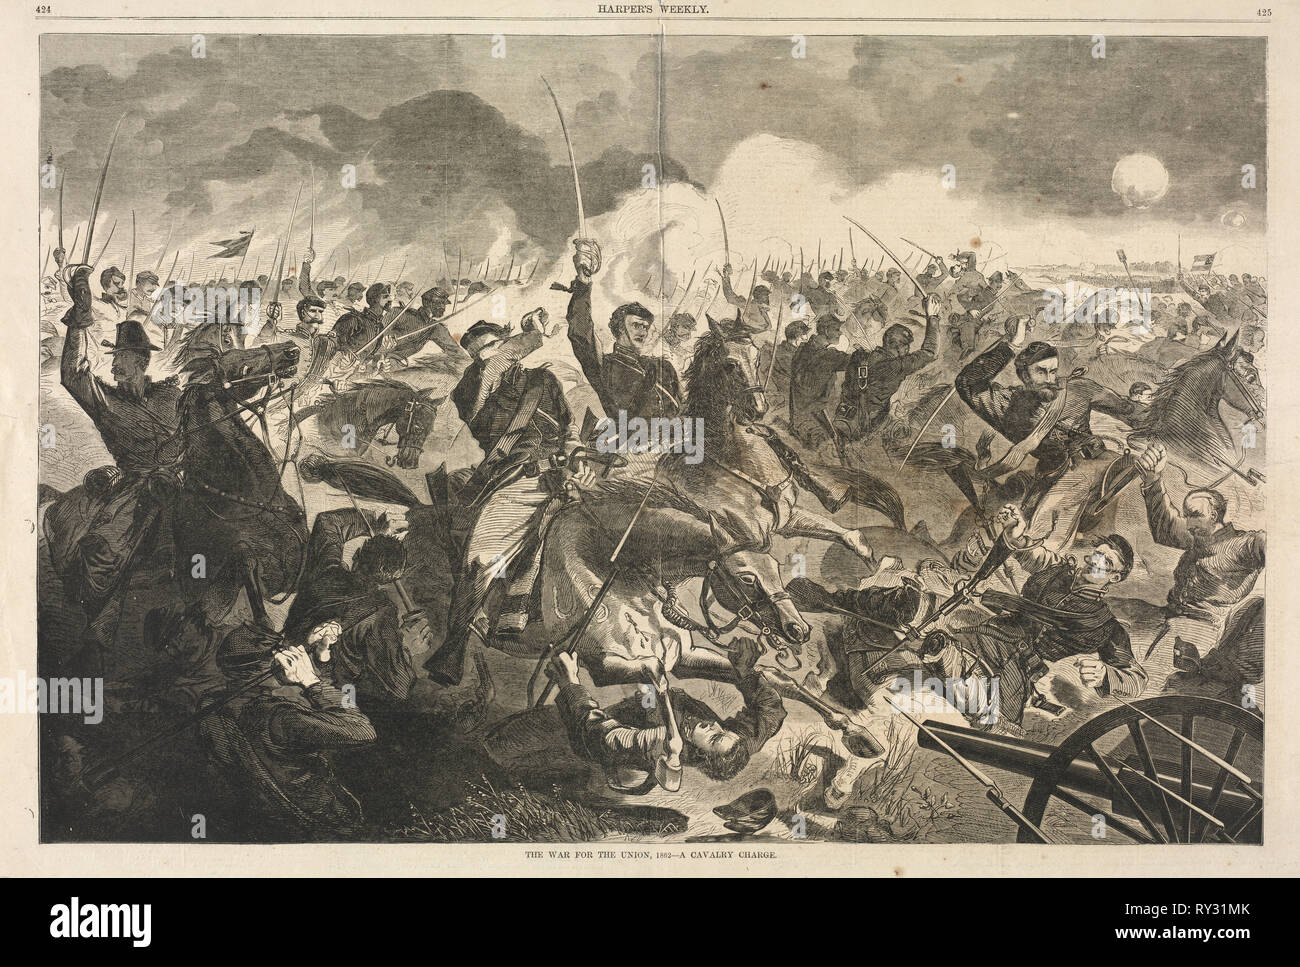 The War for the Union, 1862 - A Cavalry Charge, 1862. Winslow Homer (American, 1836-1910). Wood engraving - Stock Image